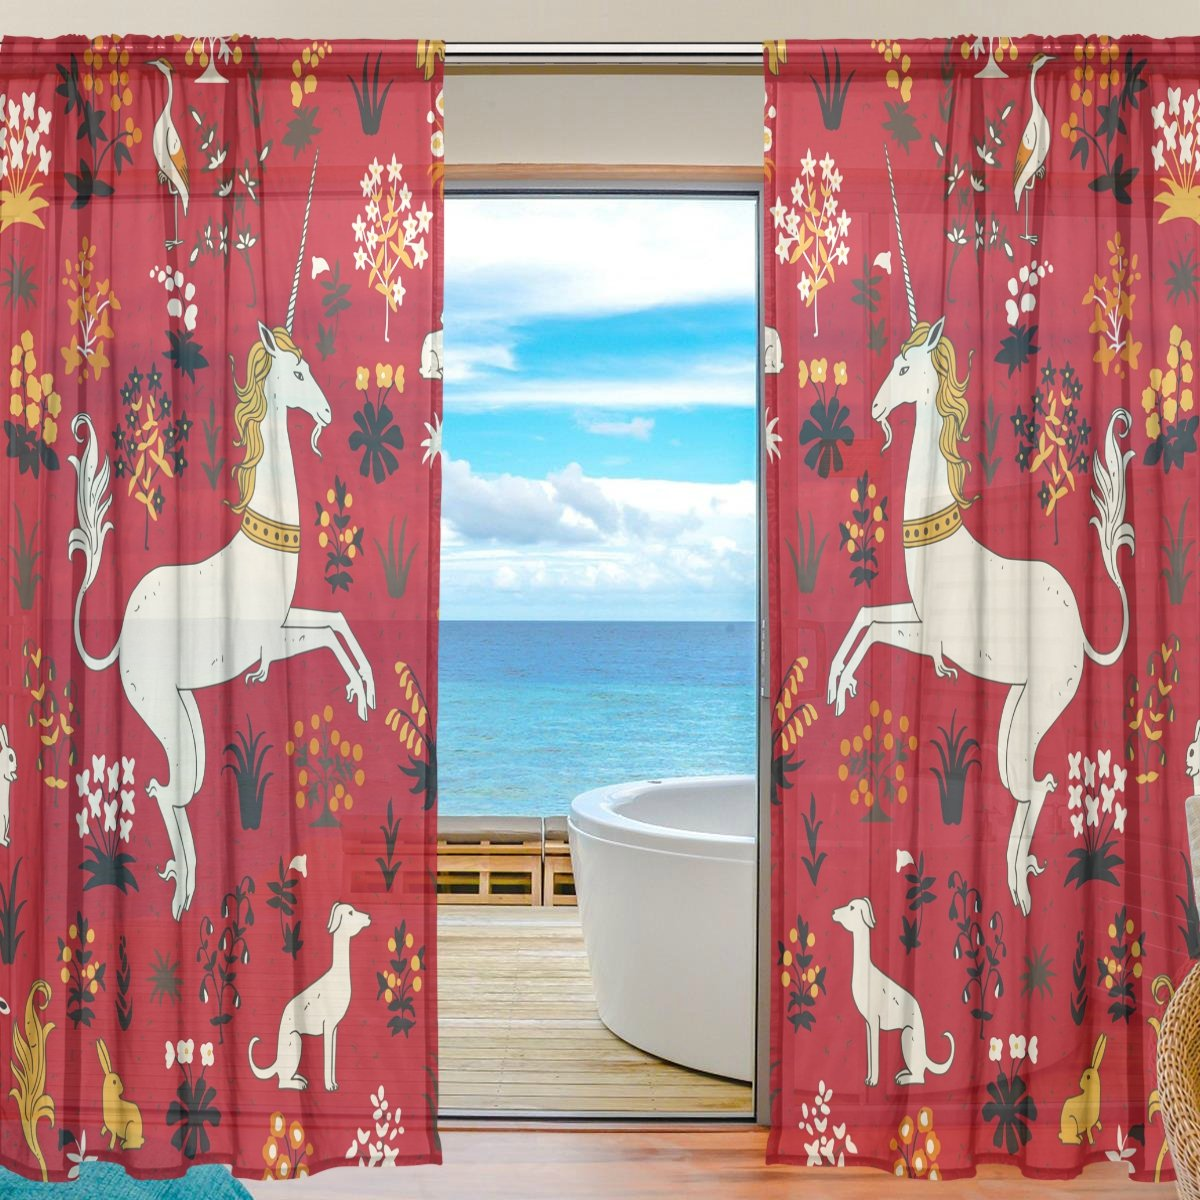 SEULIFE Window Sheer Curtain, Vintage Animal Unicorn Rabbit Flower Voile Curtain Drapes for Door Kitchen Living Room Bedroom 55x78 inches 2 Panels by SEULIFE (Image #1)